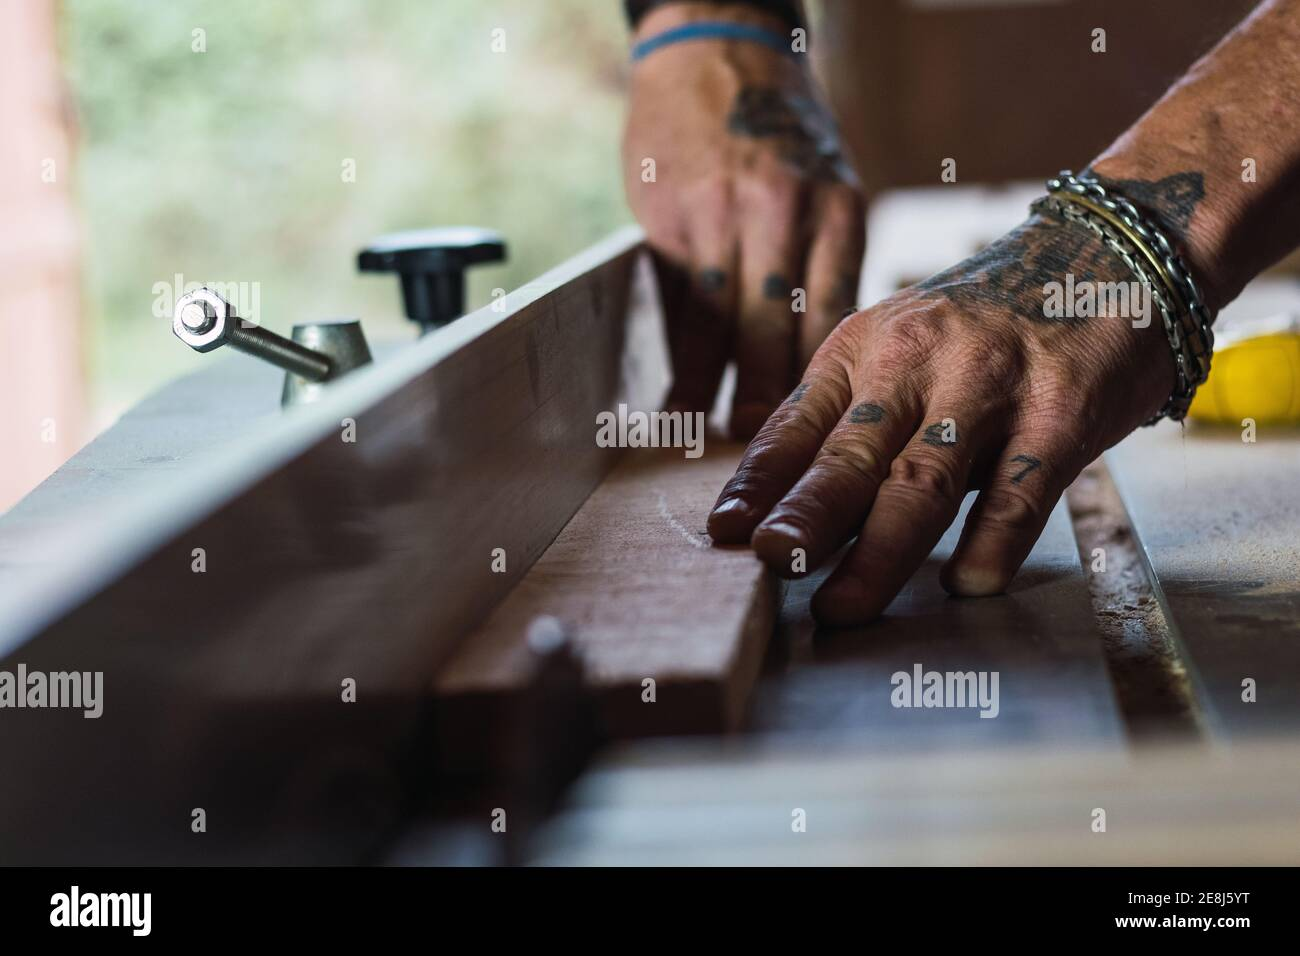 Closeup of crop unrecognizable male without a thumb joiner cutting wood with circular saw in joinery Stock Photo